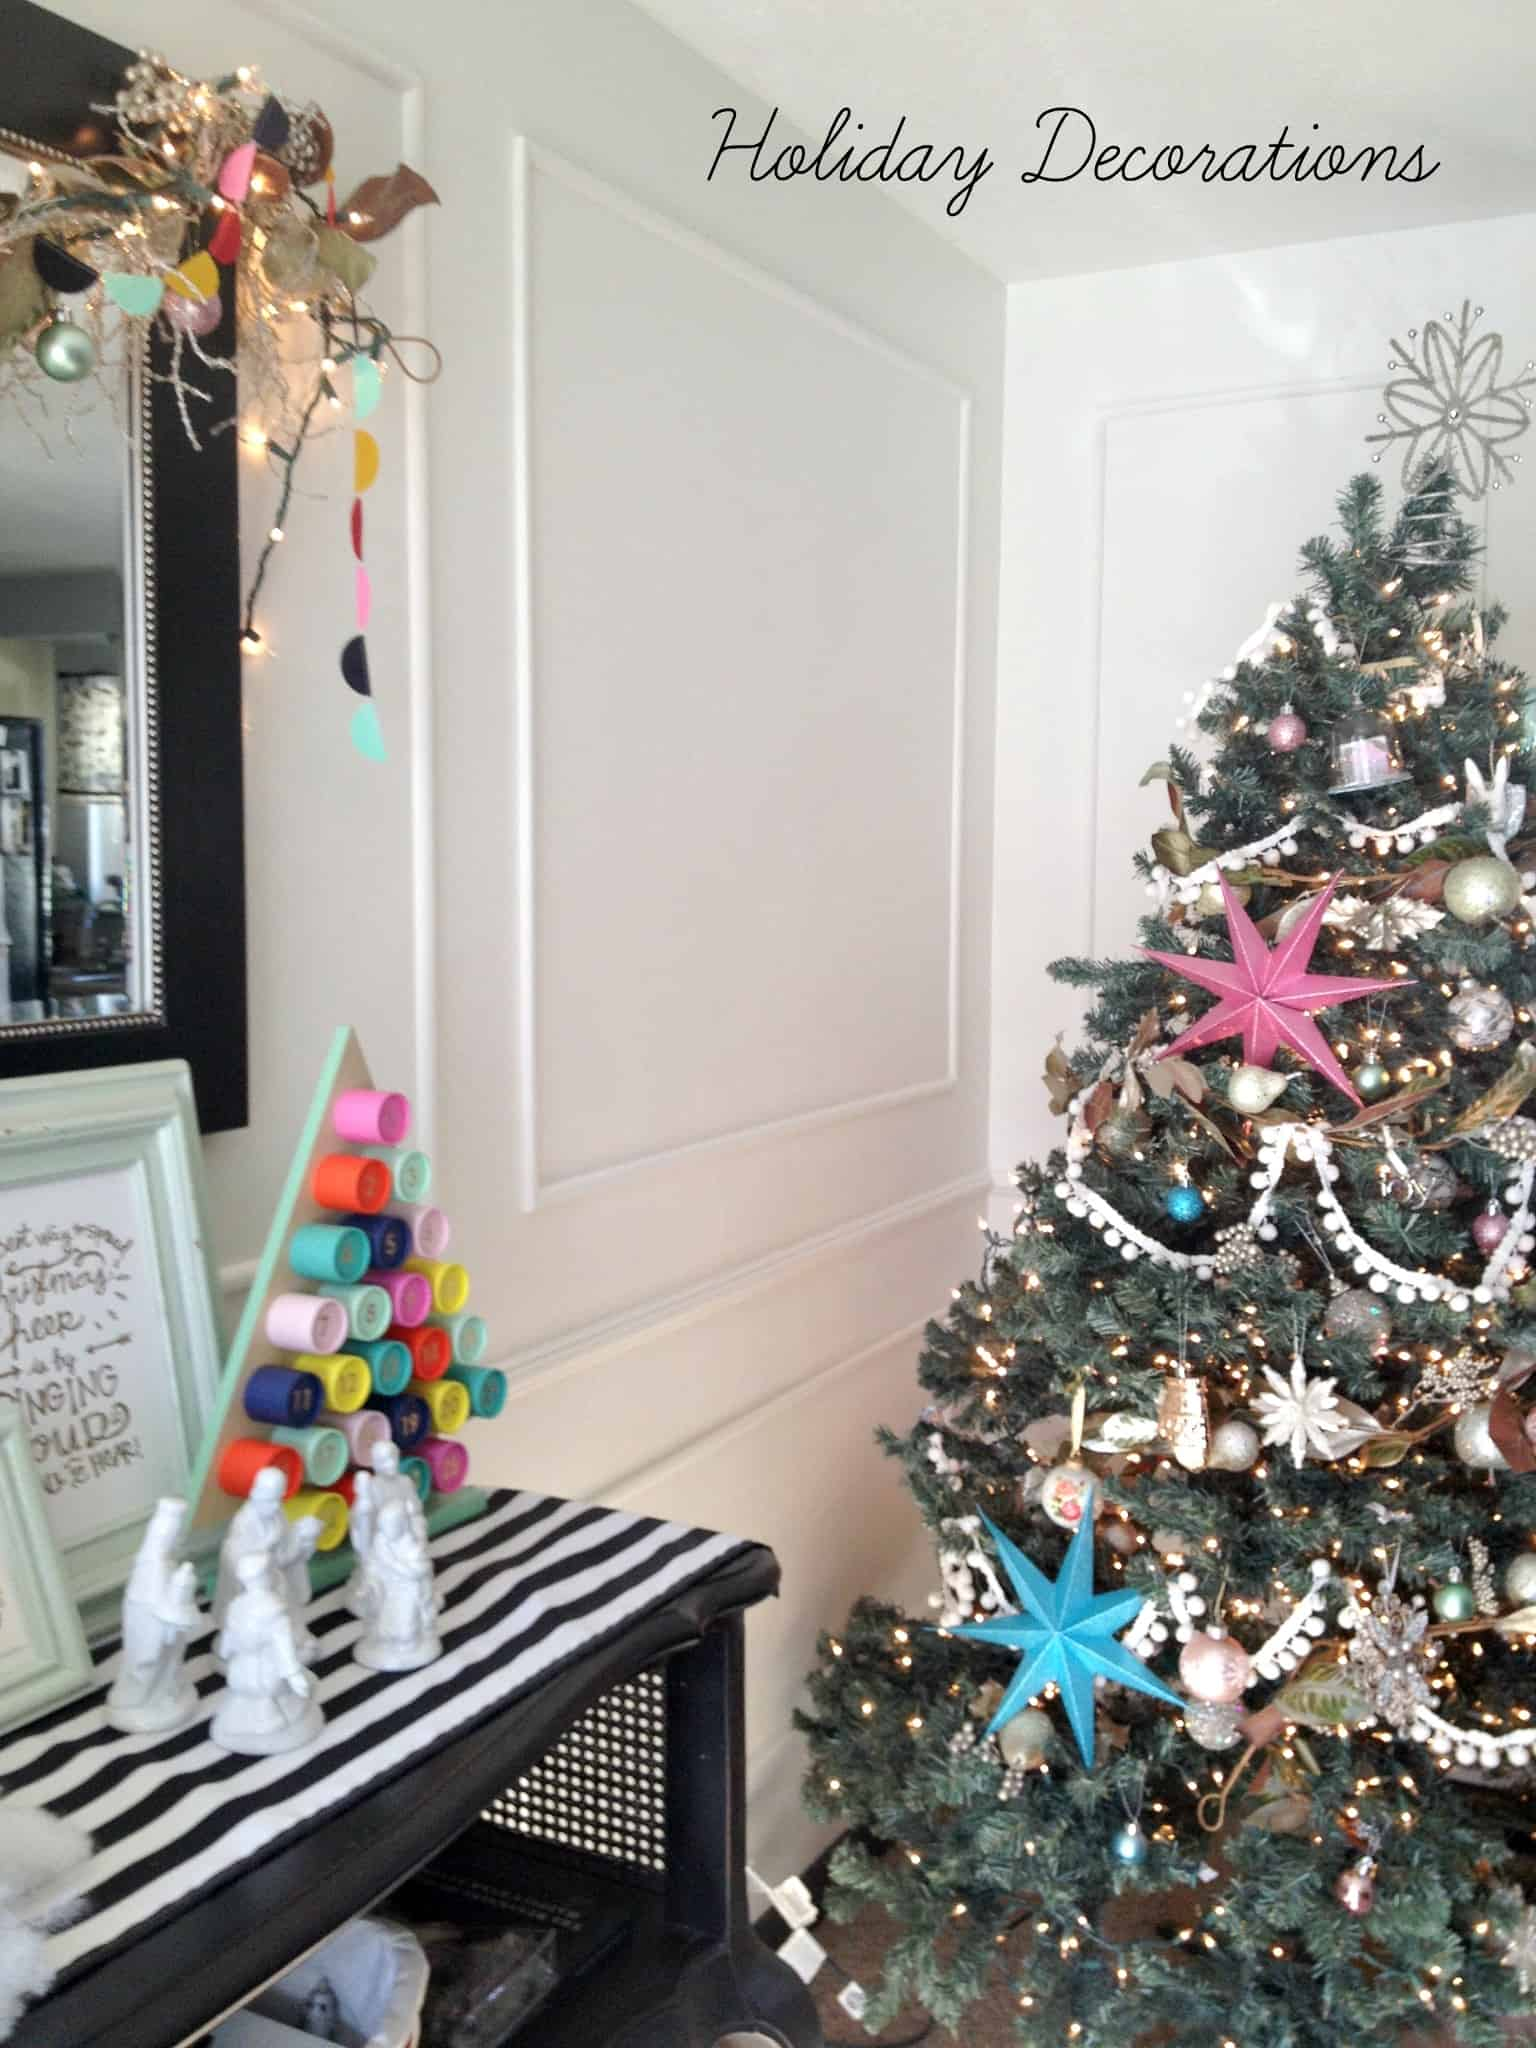 Holiday Decorations - at home with Ashley